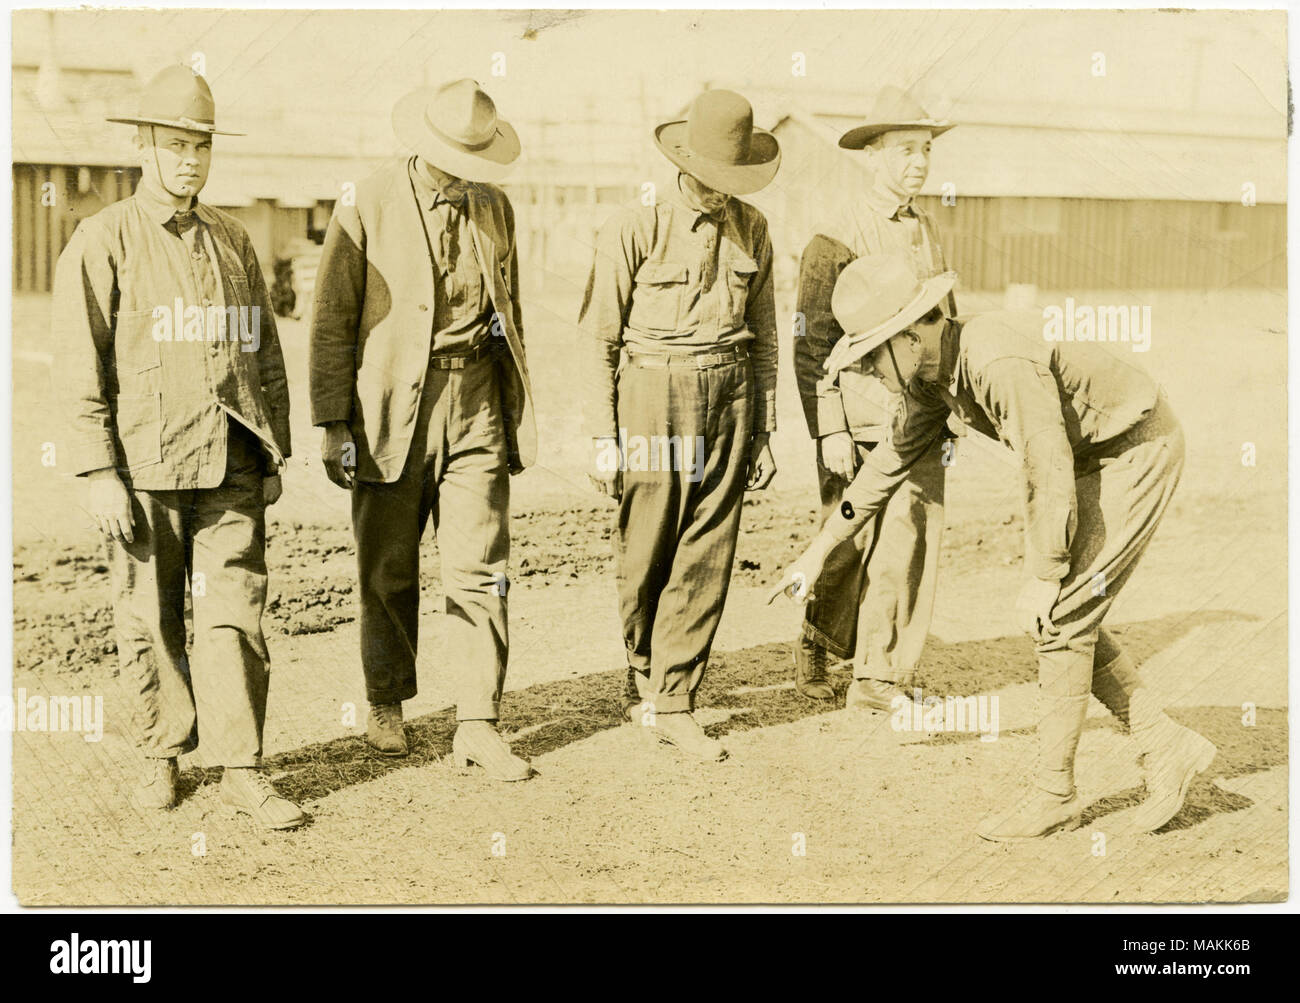 Horizontal, sepia photograph showing four uniformed men standing in a line with their left foot in front of their right foot. Another uniformed soldier stands in front of the men leaning down and pointing at the foot of one of the men. Title: Soldiers Standing in Line While Another Soldier Stands in Front Pointing to a Soldier's Foot.  . between circa 1914 and circa 1918. Michel, Carl - Stock Image